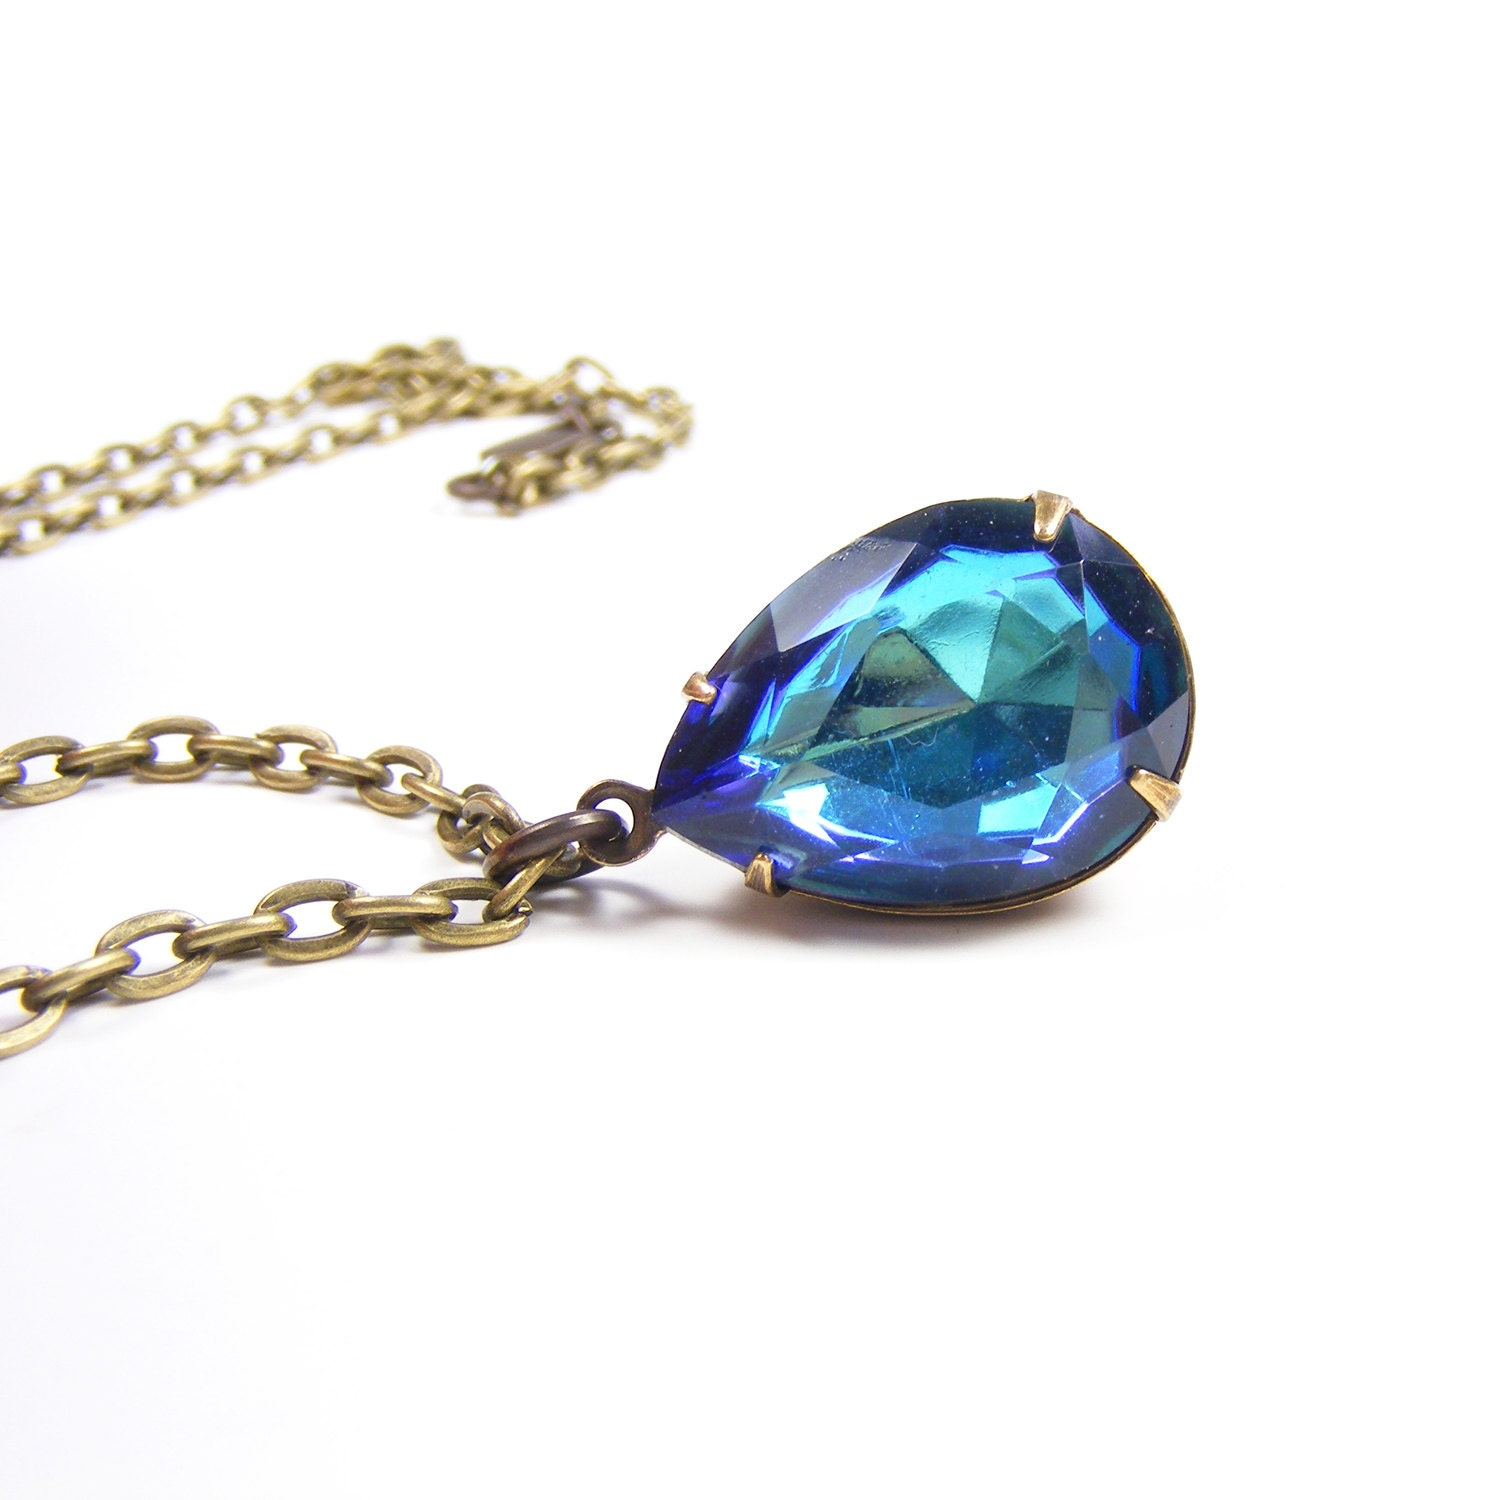 Blue Vintage Style Rhinestone Pendant, Downton Abbey Vintage Inspired Necklace, Bermuda Blue Vintage Rhinestone Teardrop Necklace